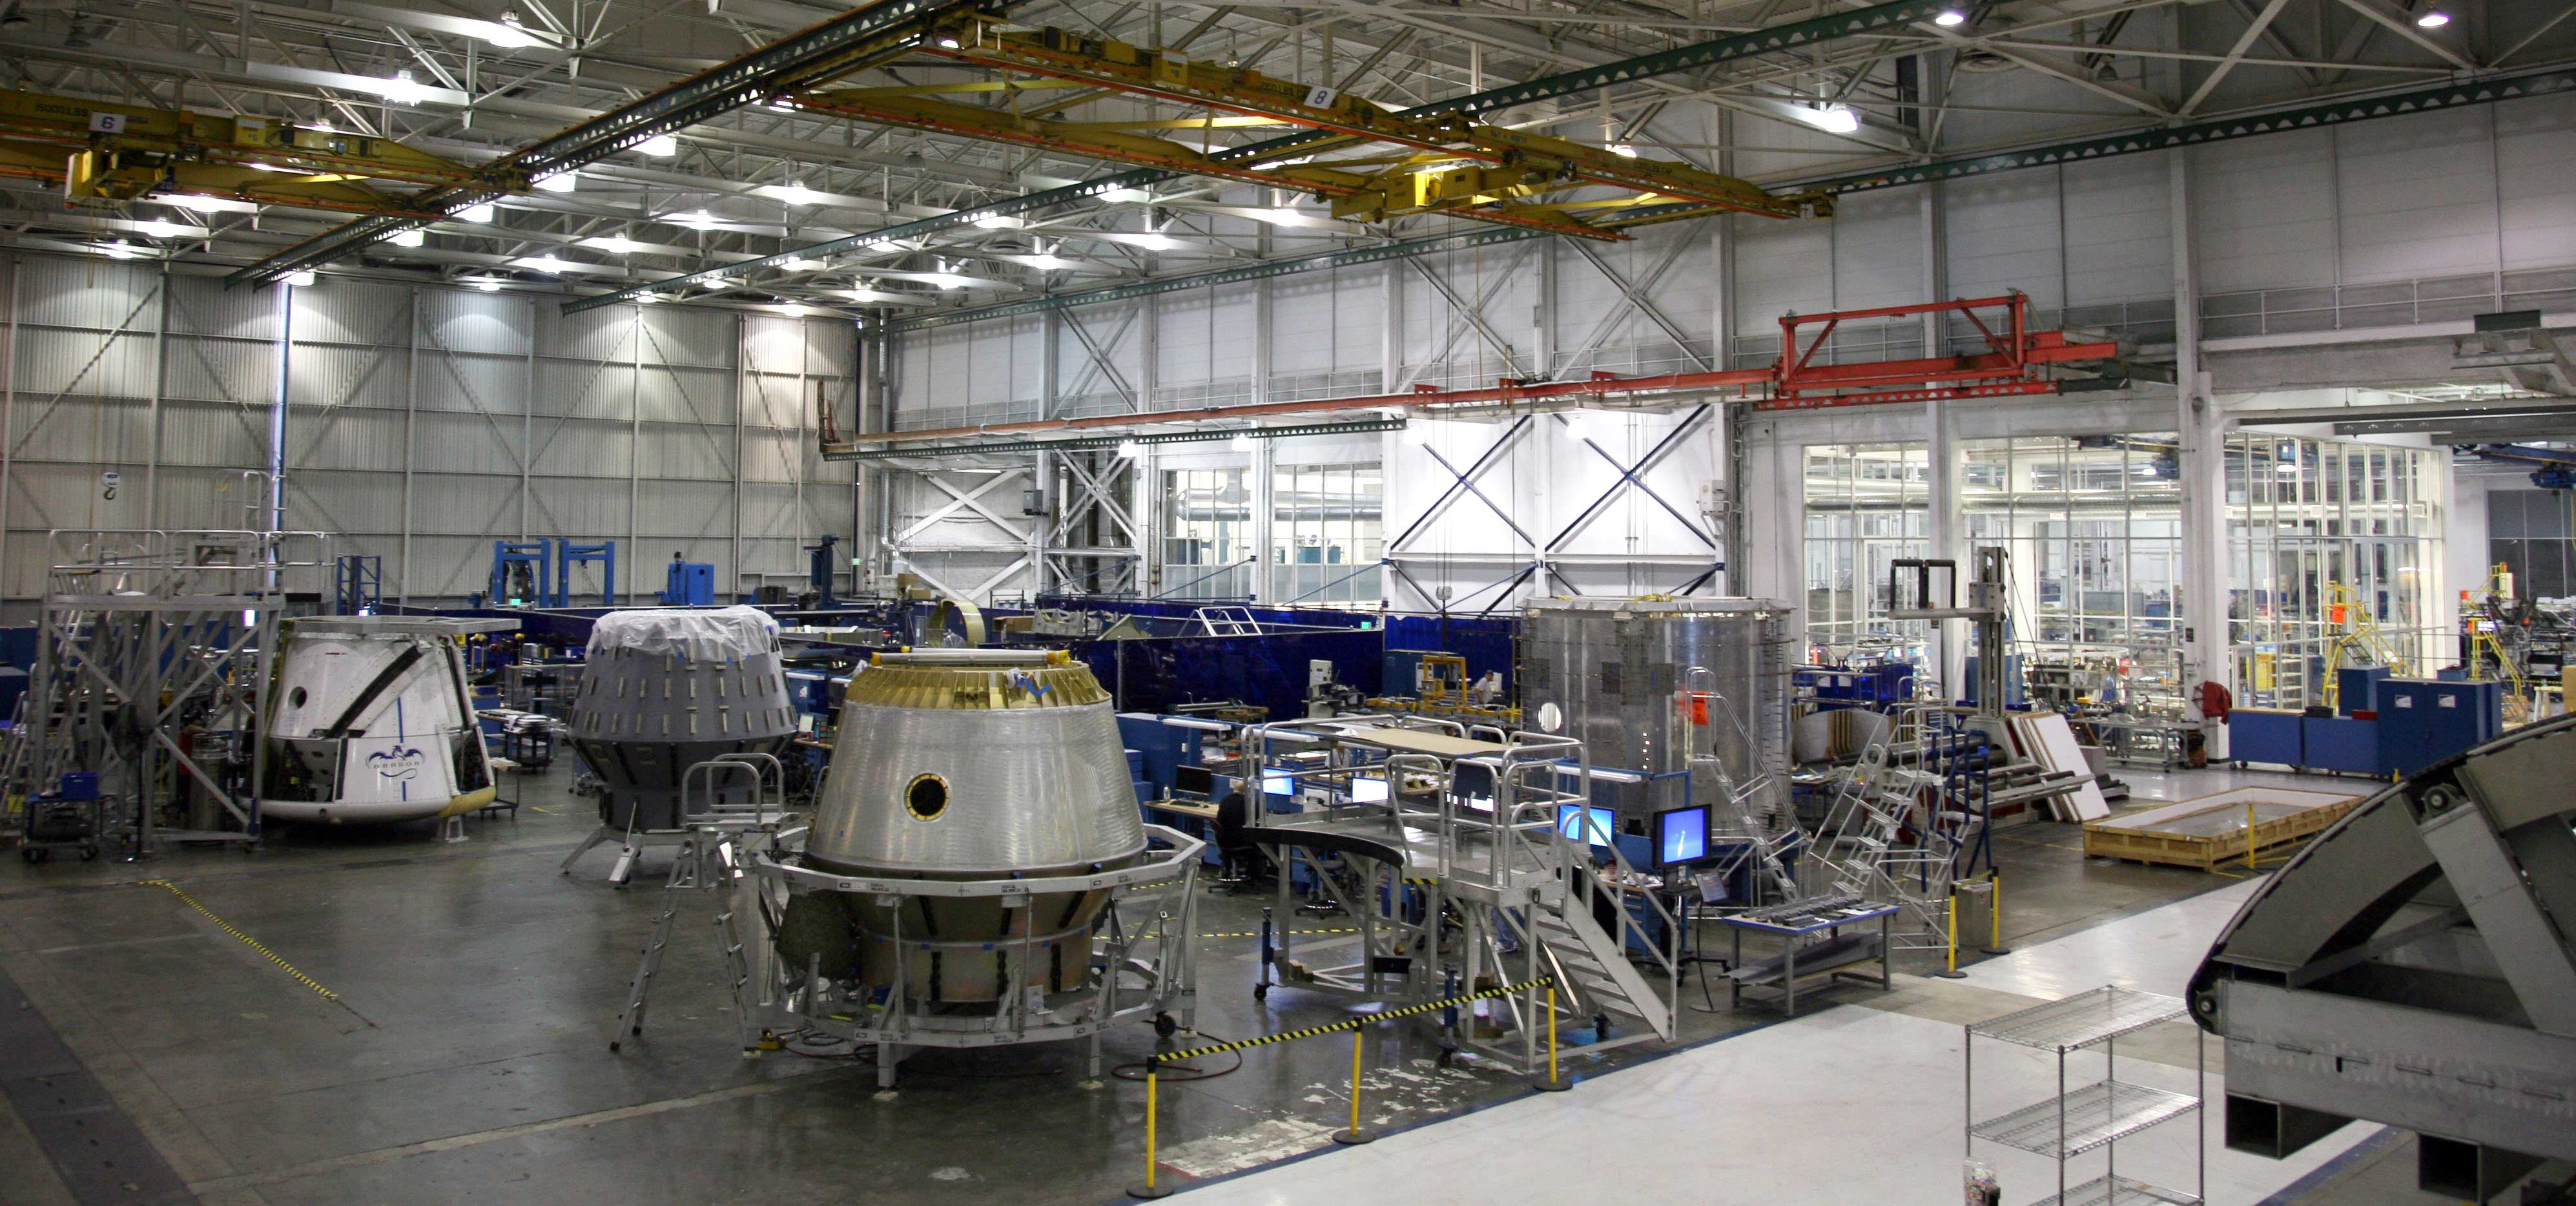 Environmental Services for the Aerospace Industry